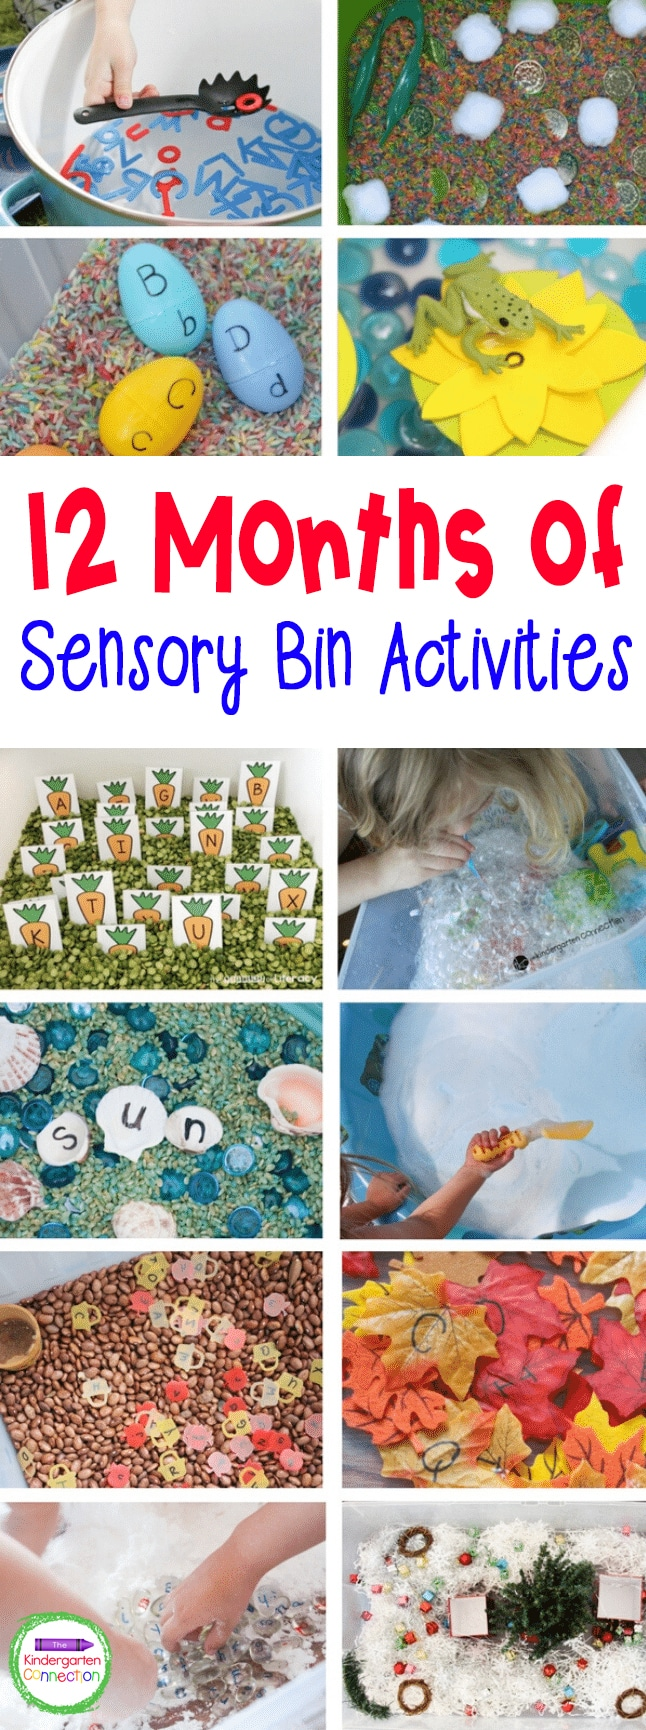 Check out these tips for how to make 12 Months of Sensory Bin Activities that are perfect for Pre-K and Kindergarten classrooms!